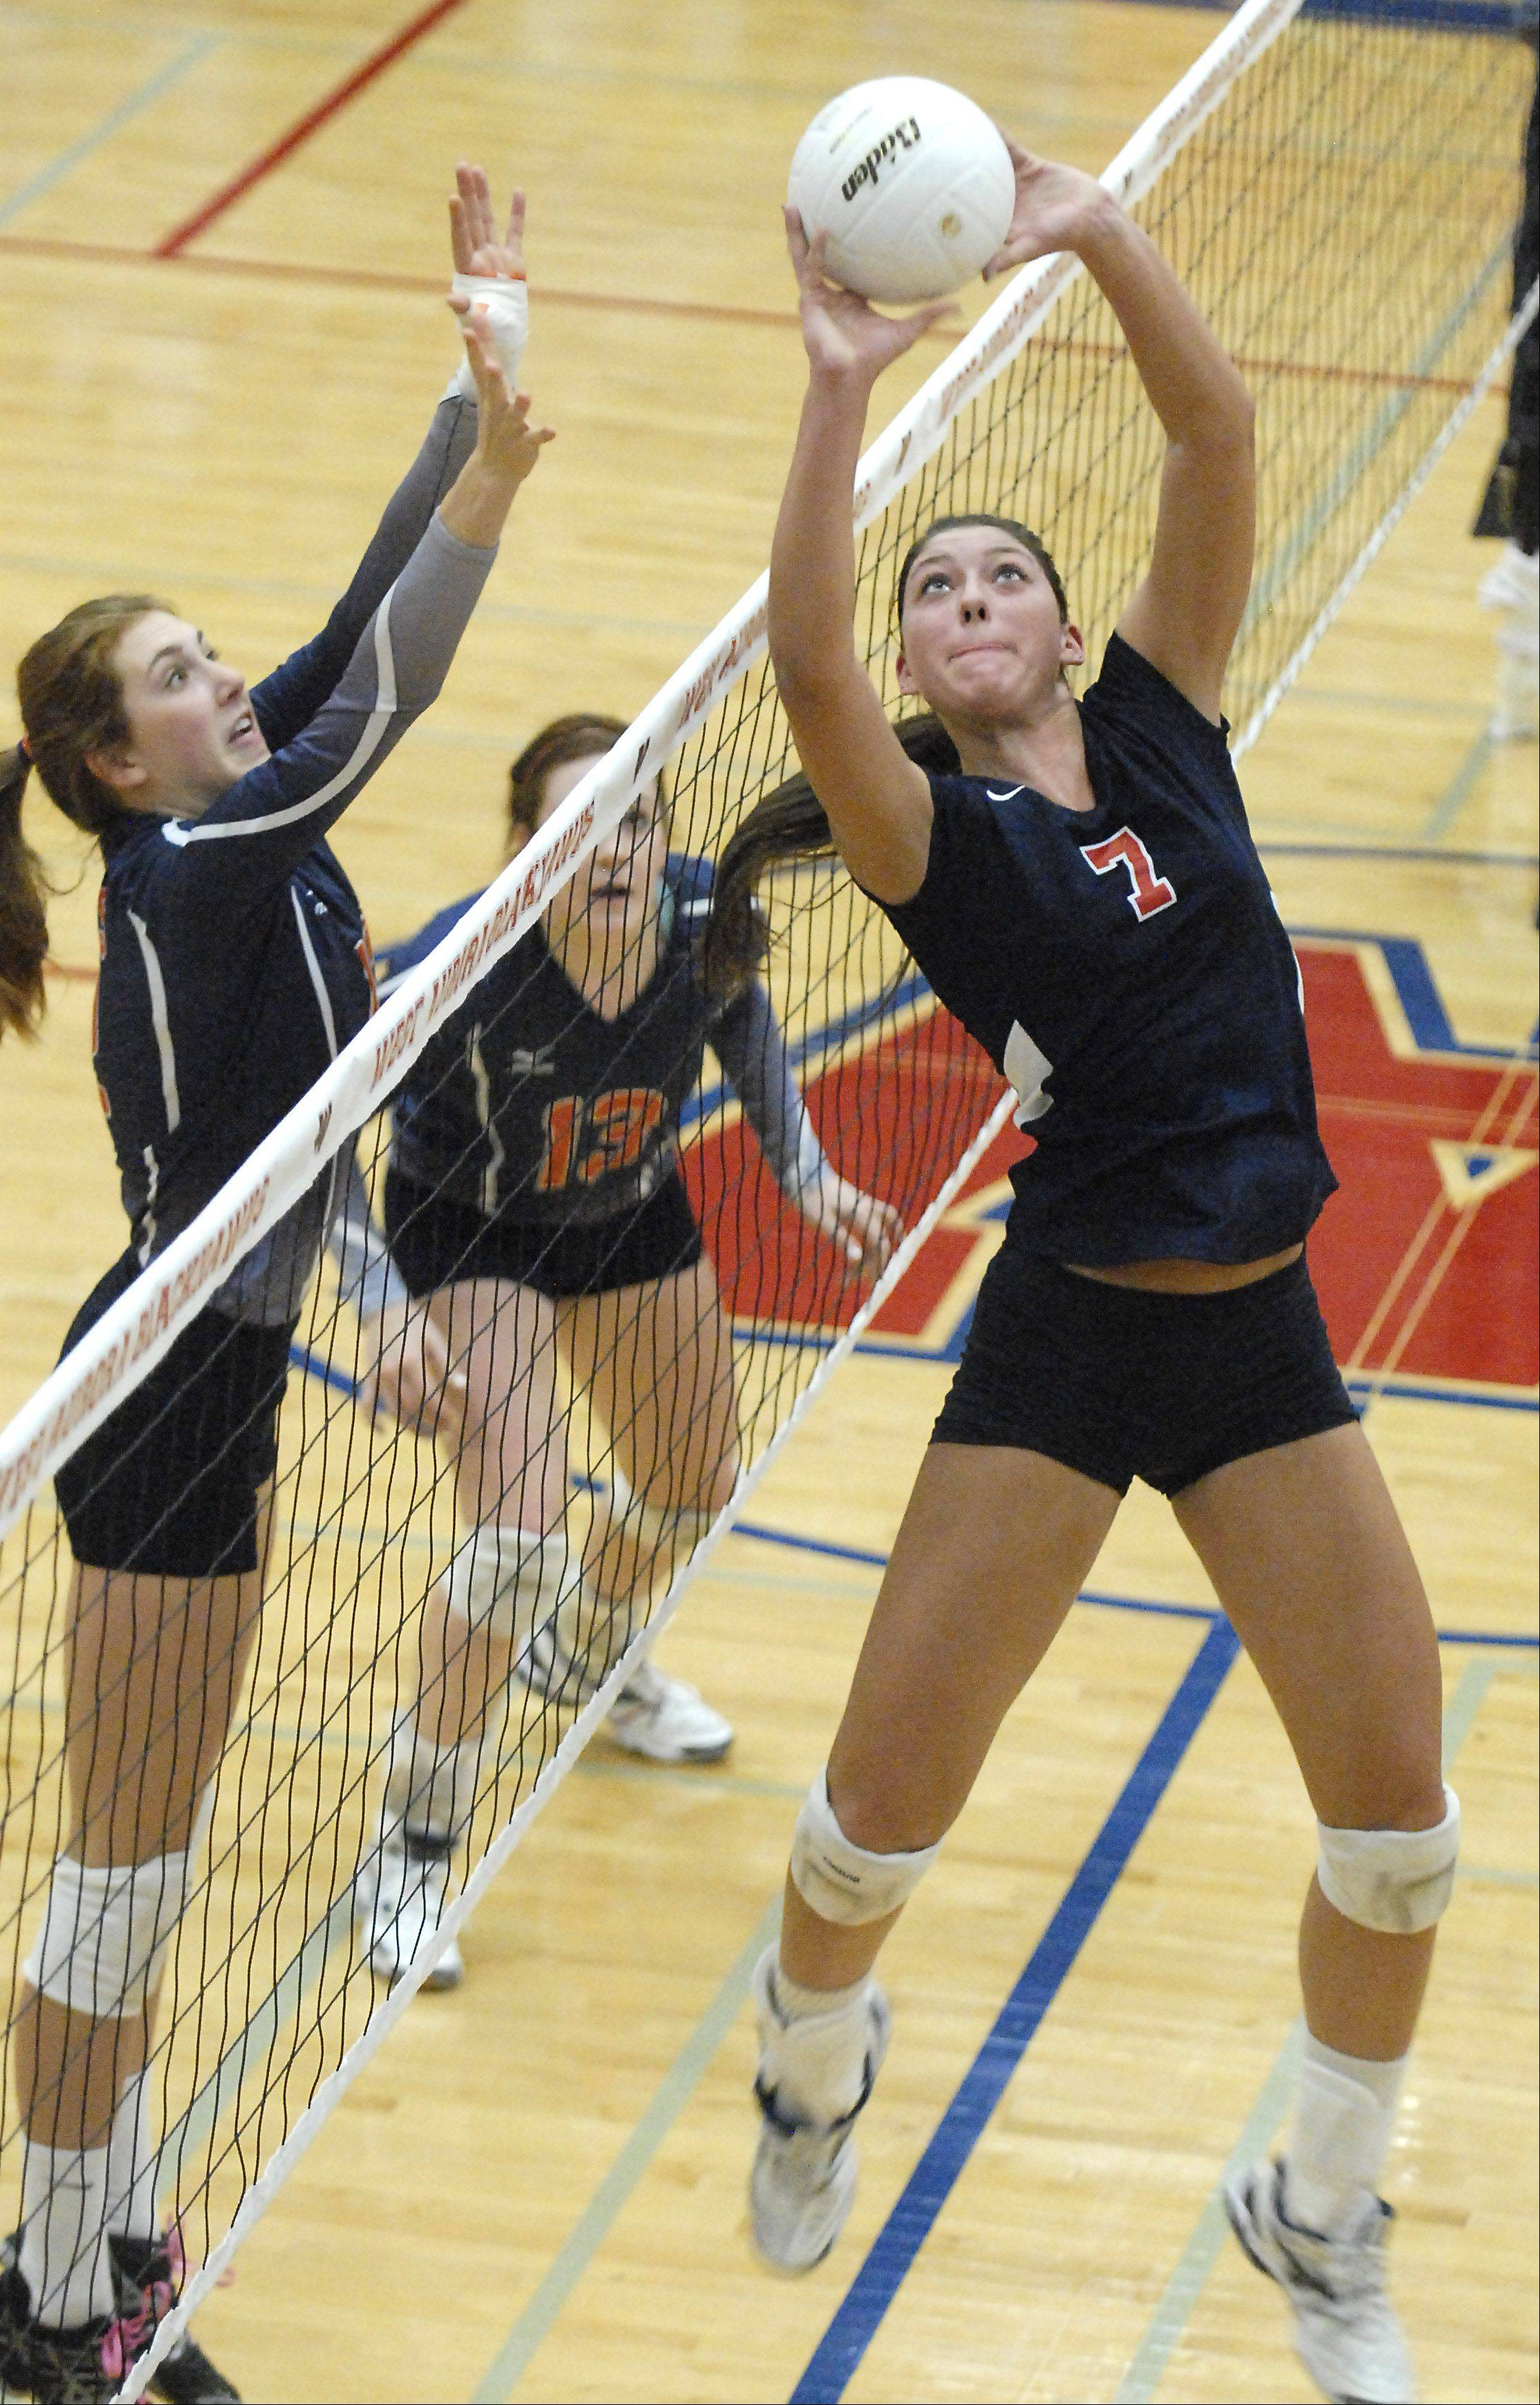 West Aurora's Lauren Carlini tips the ball over the net to Naperville North's Becky Welch and Corinne Gajcak Thursday.